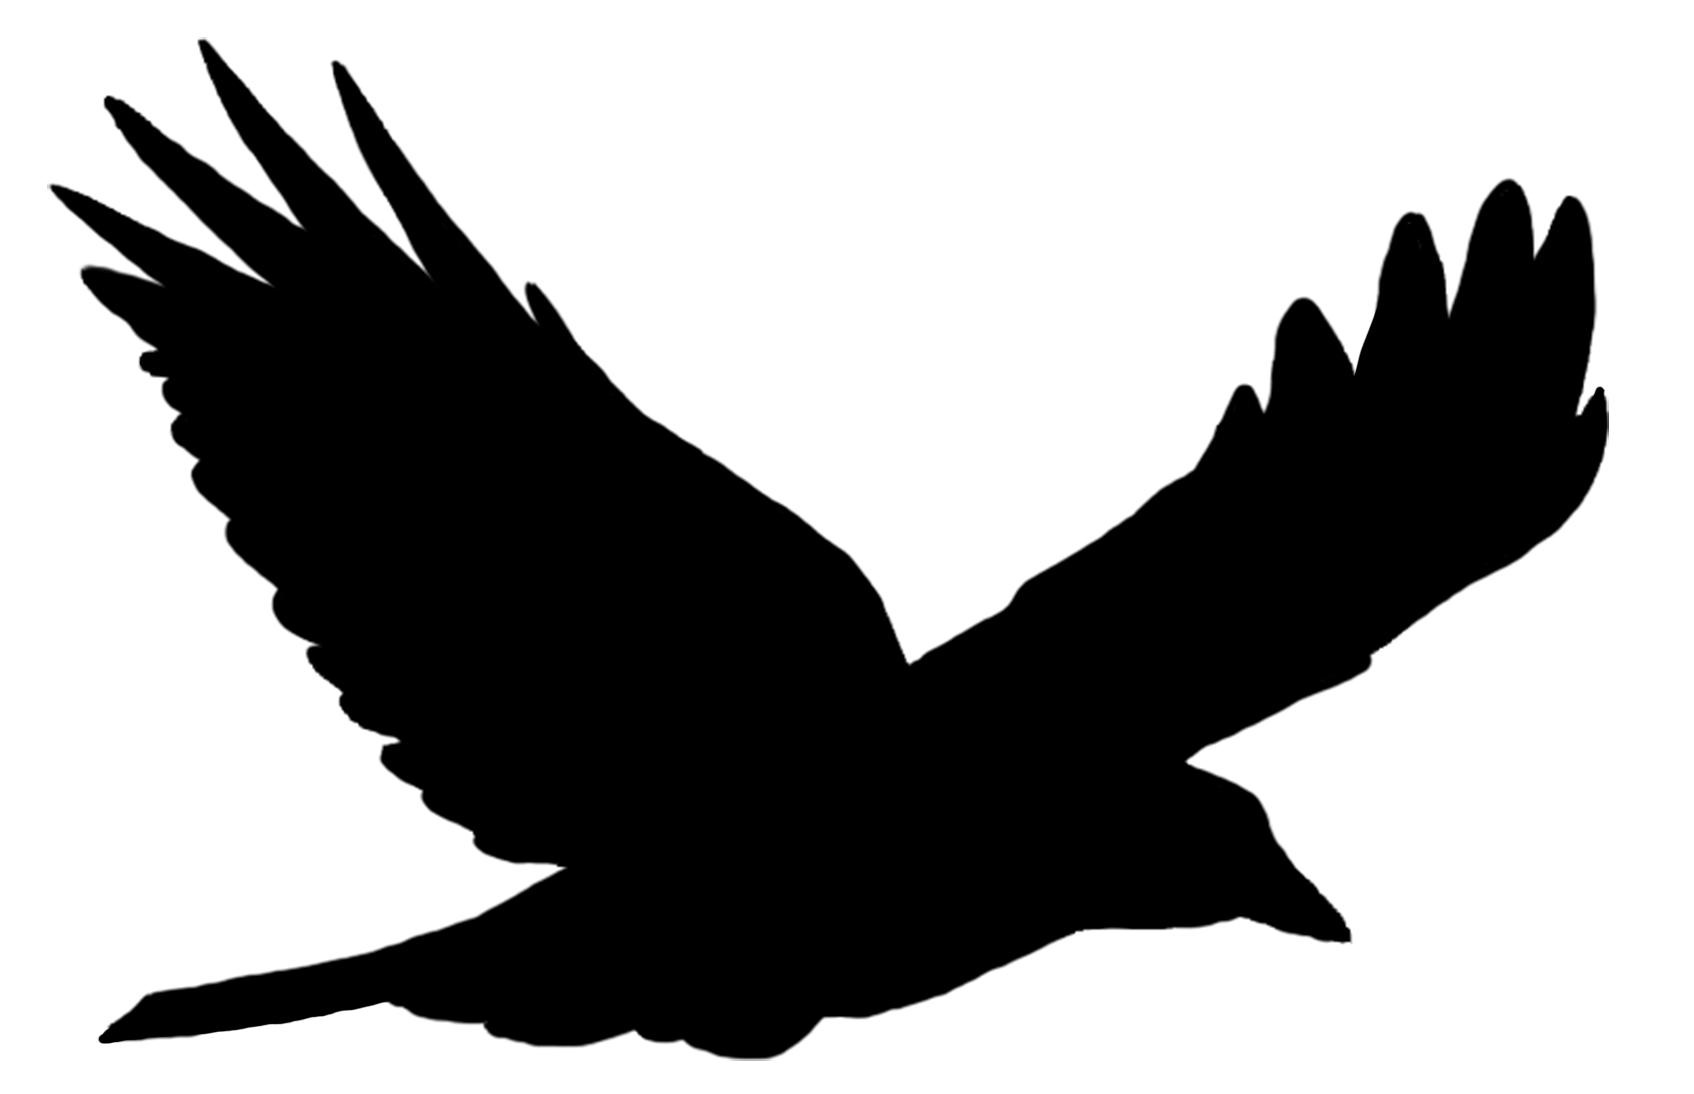 1694x1094 Bird Silhouettes Transparent Png Images